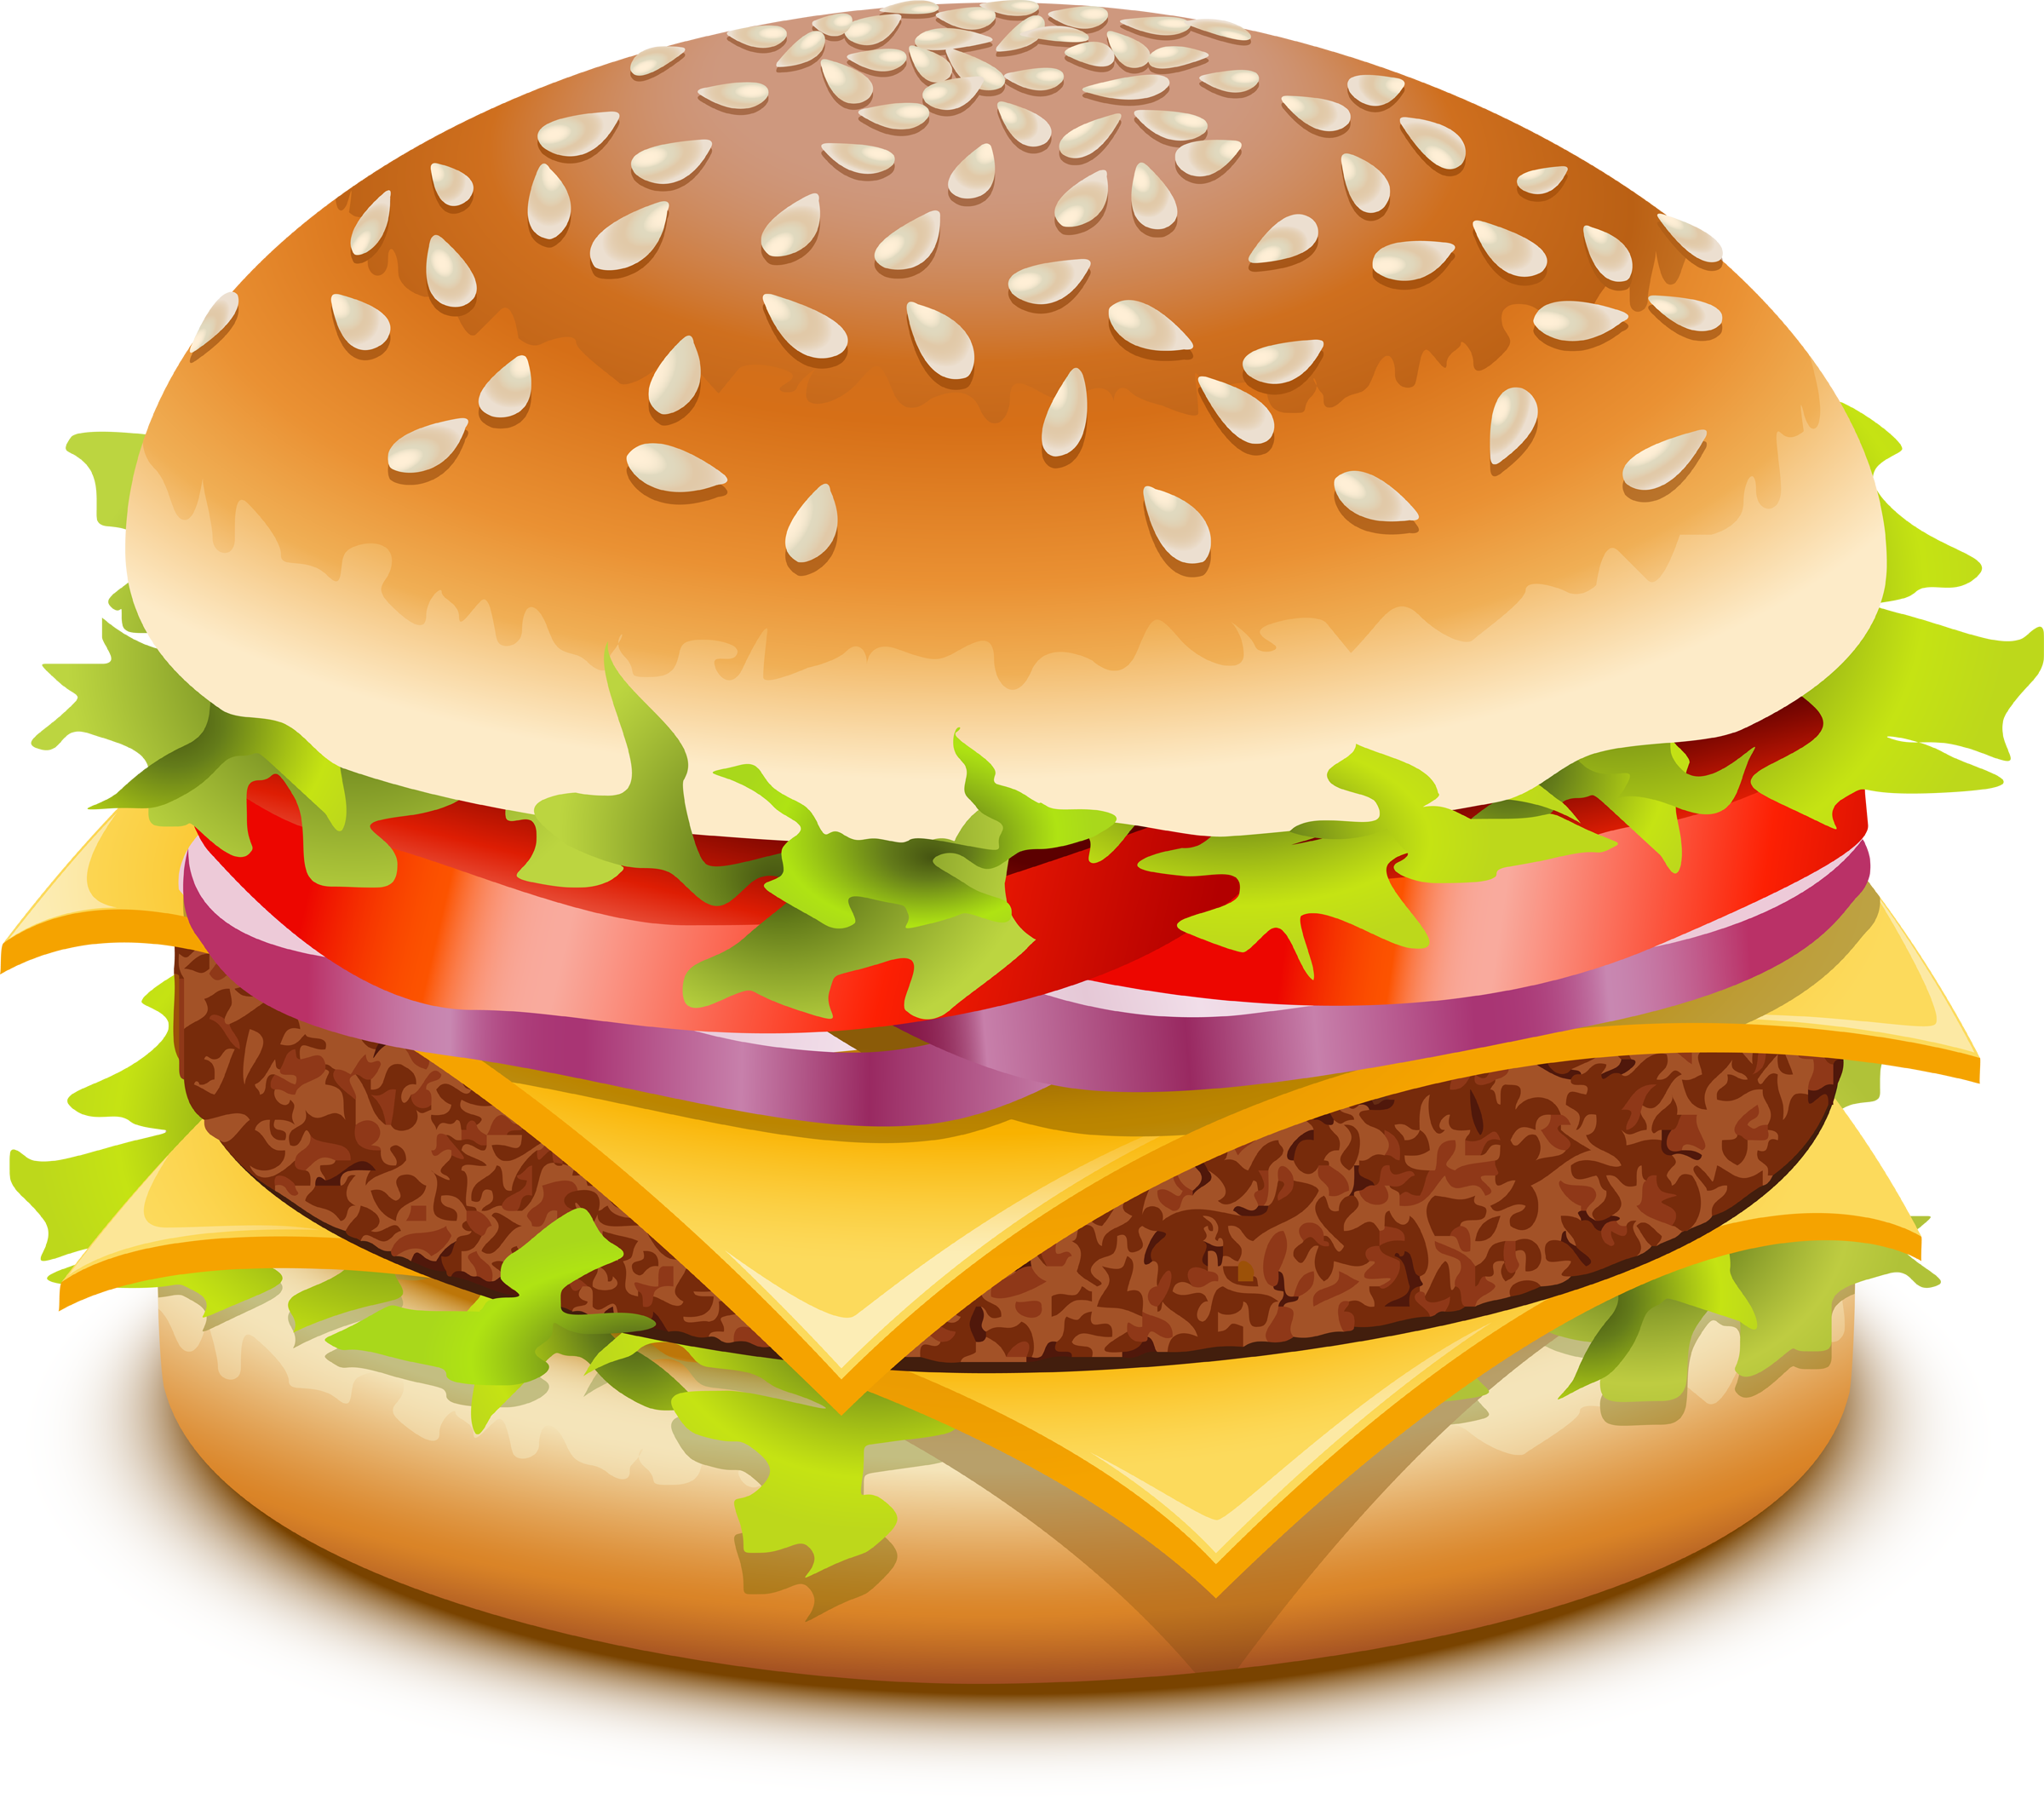 Hot dog cart clipart image library Burger and sandwich PNG images download pictures image library